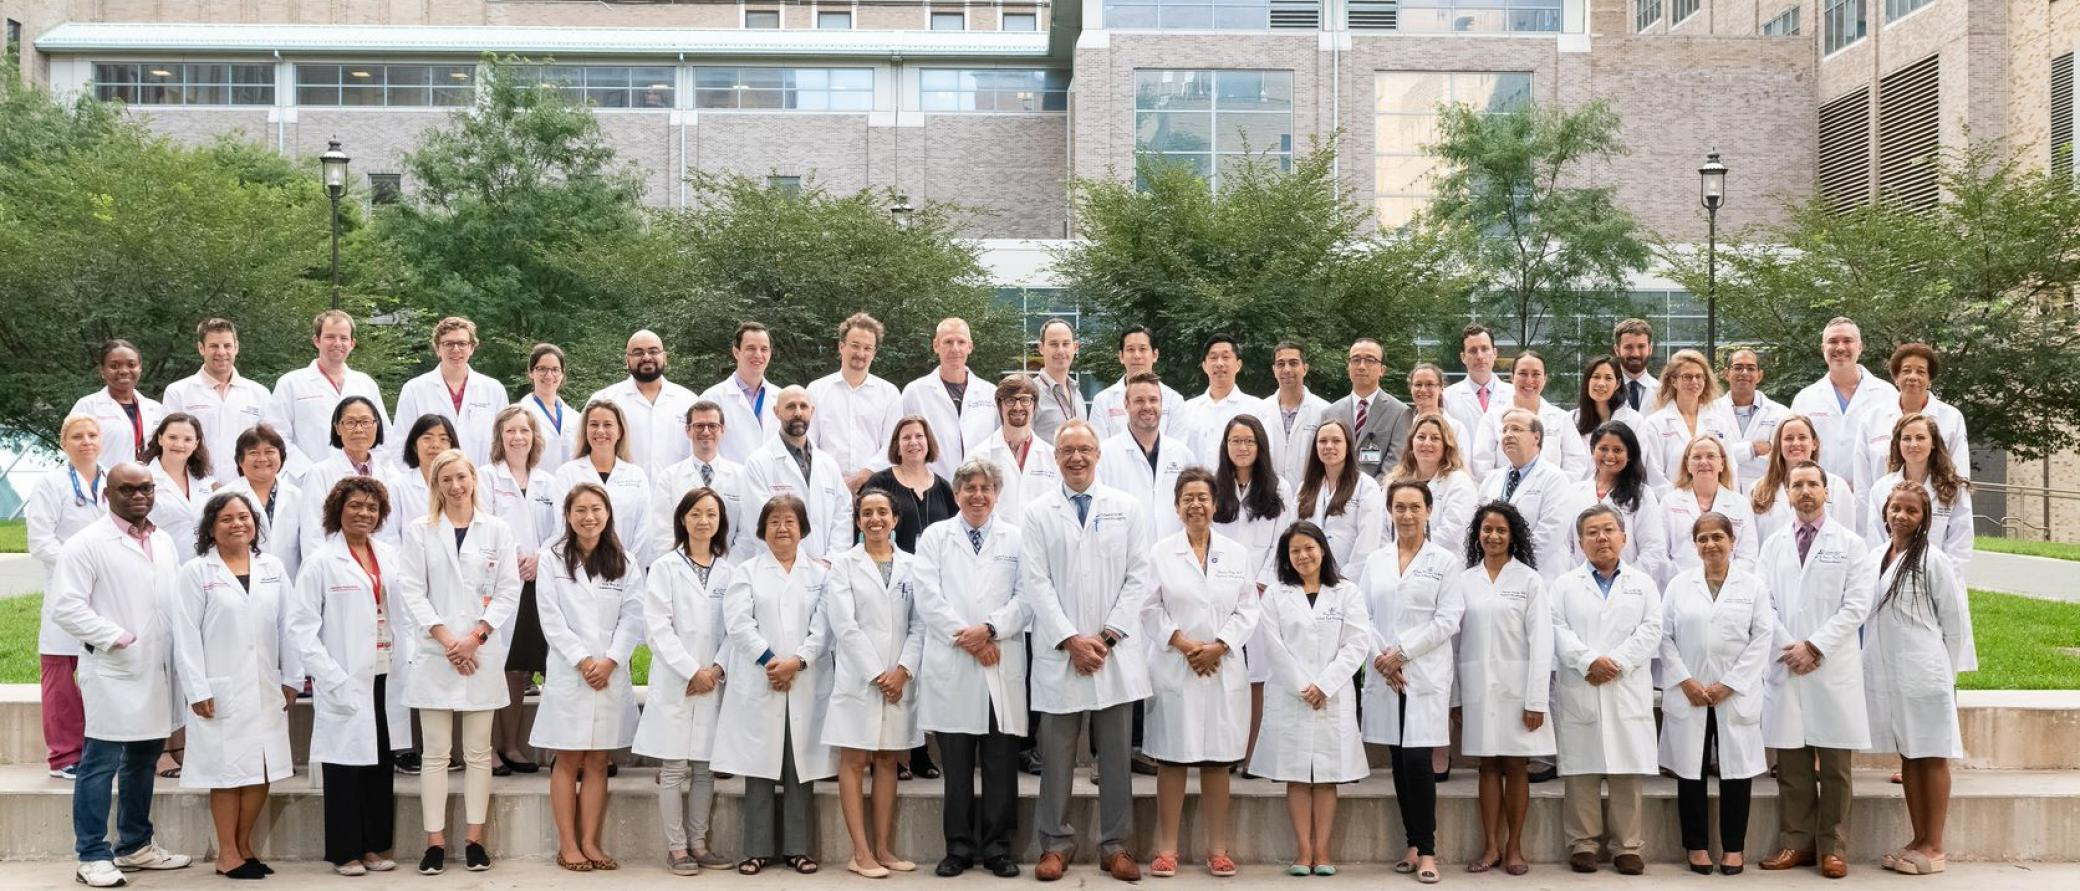 Clinical members of the department of Anesthesiology dressed in white coats.